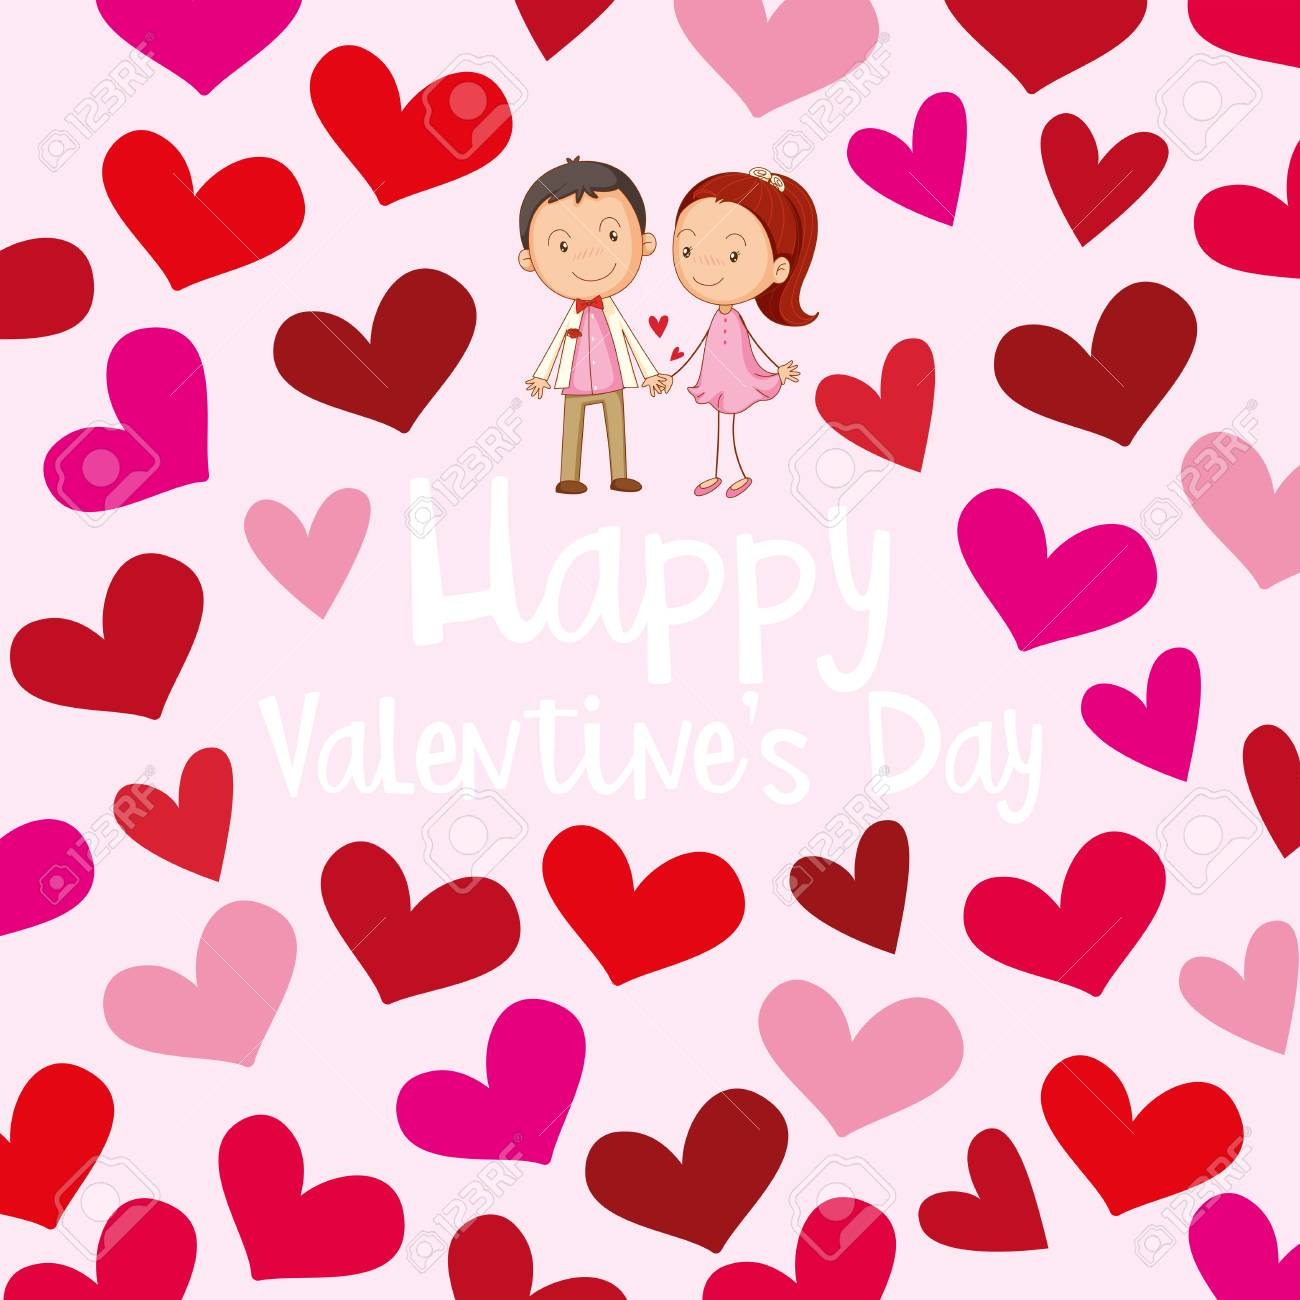 Happy Valentine Card Template With Love Couple Illustration Royalty